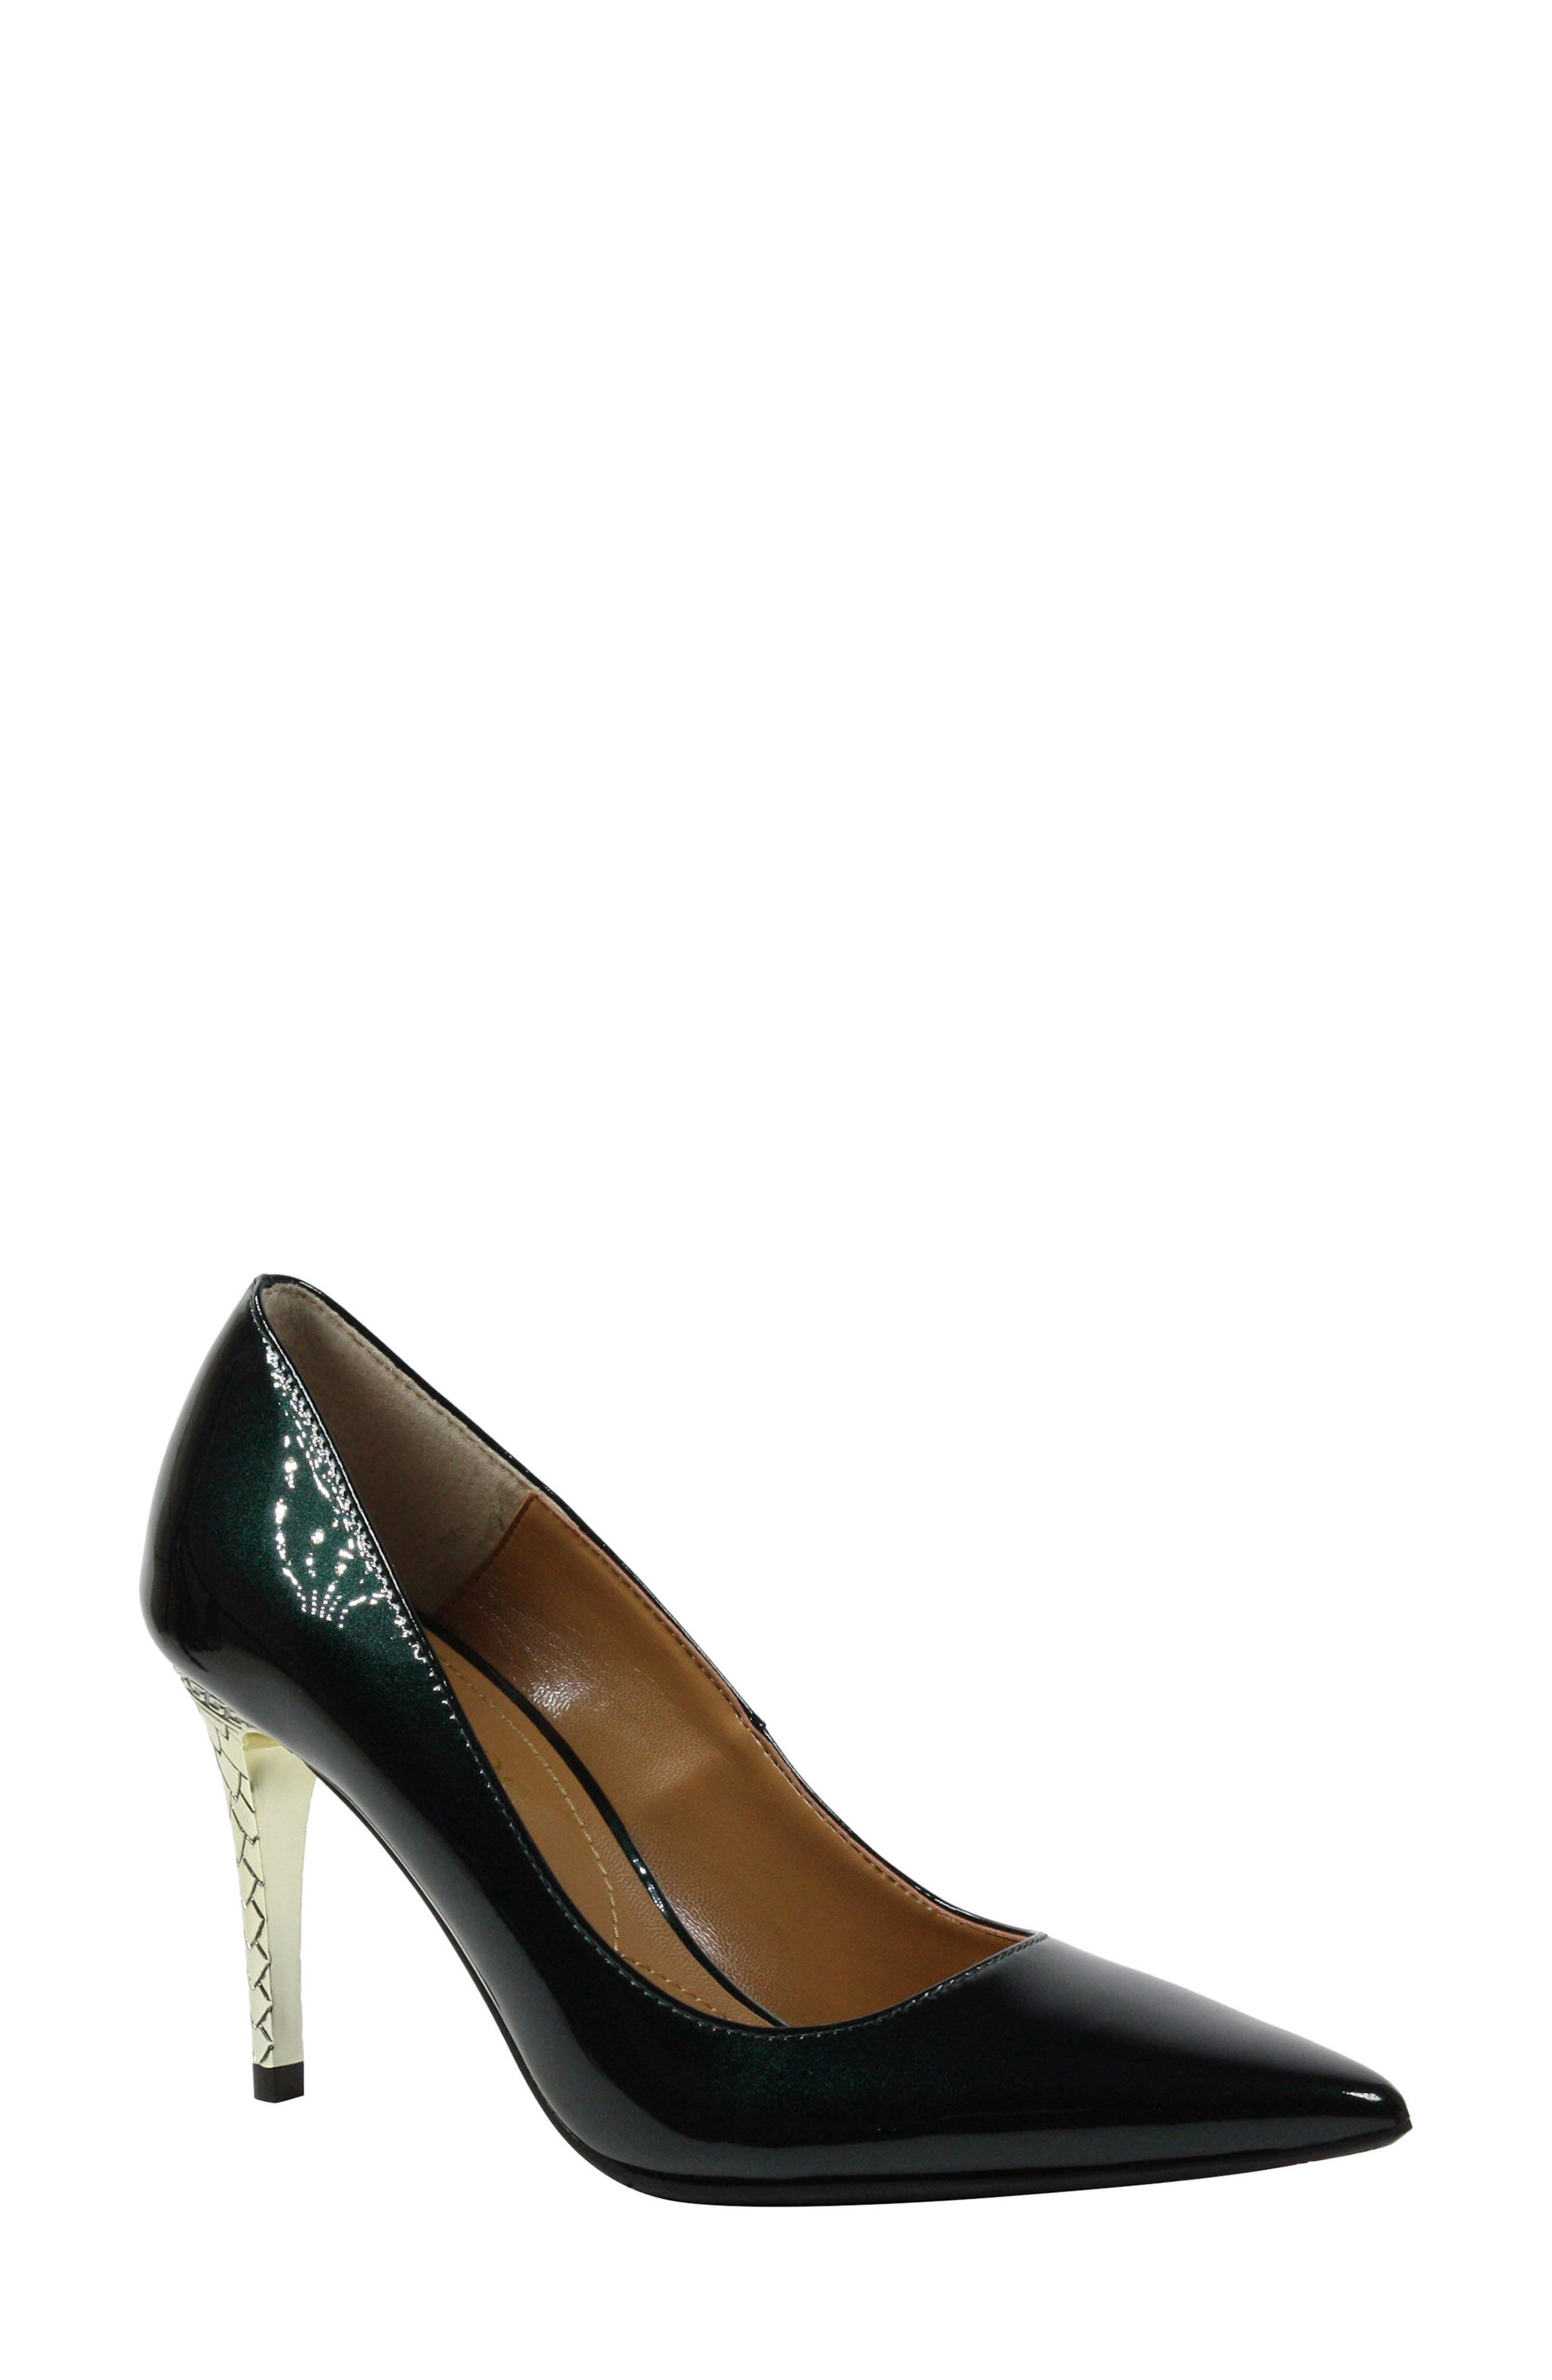 Alternate Image 1 Selected - J. Reneé 'Maressa' Pointy Toe Pump (Women)